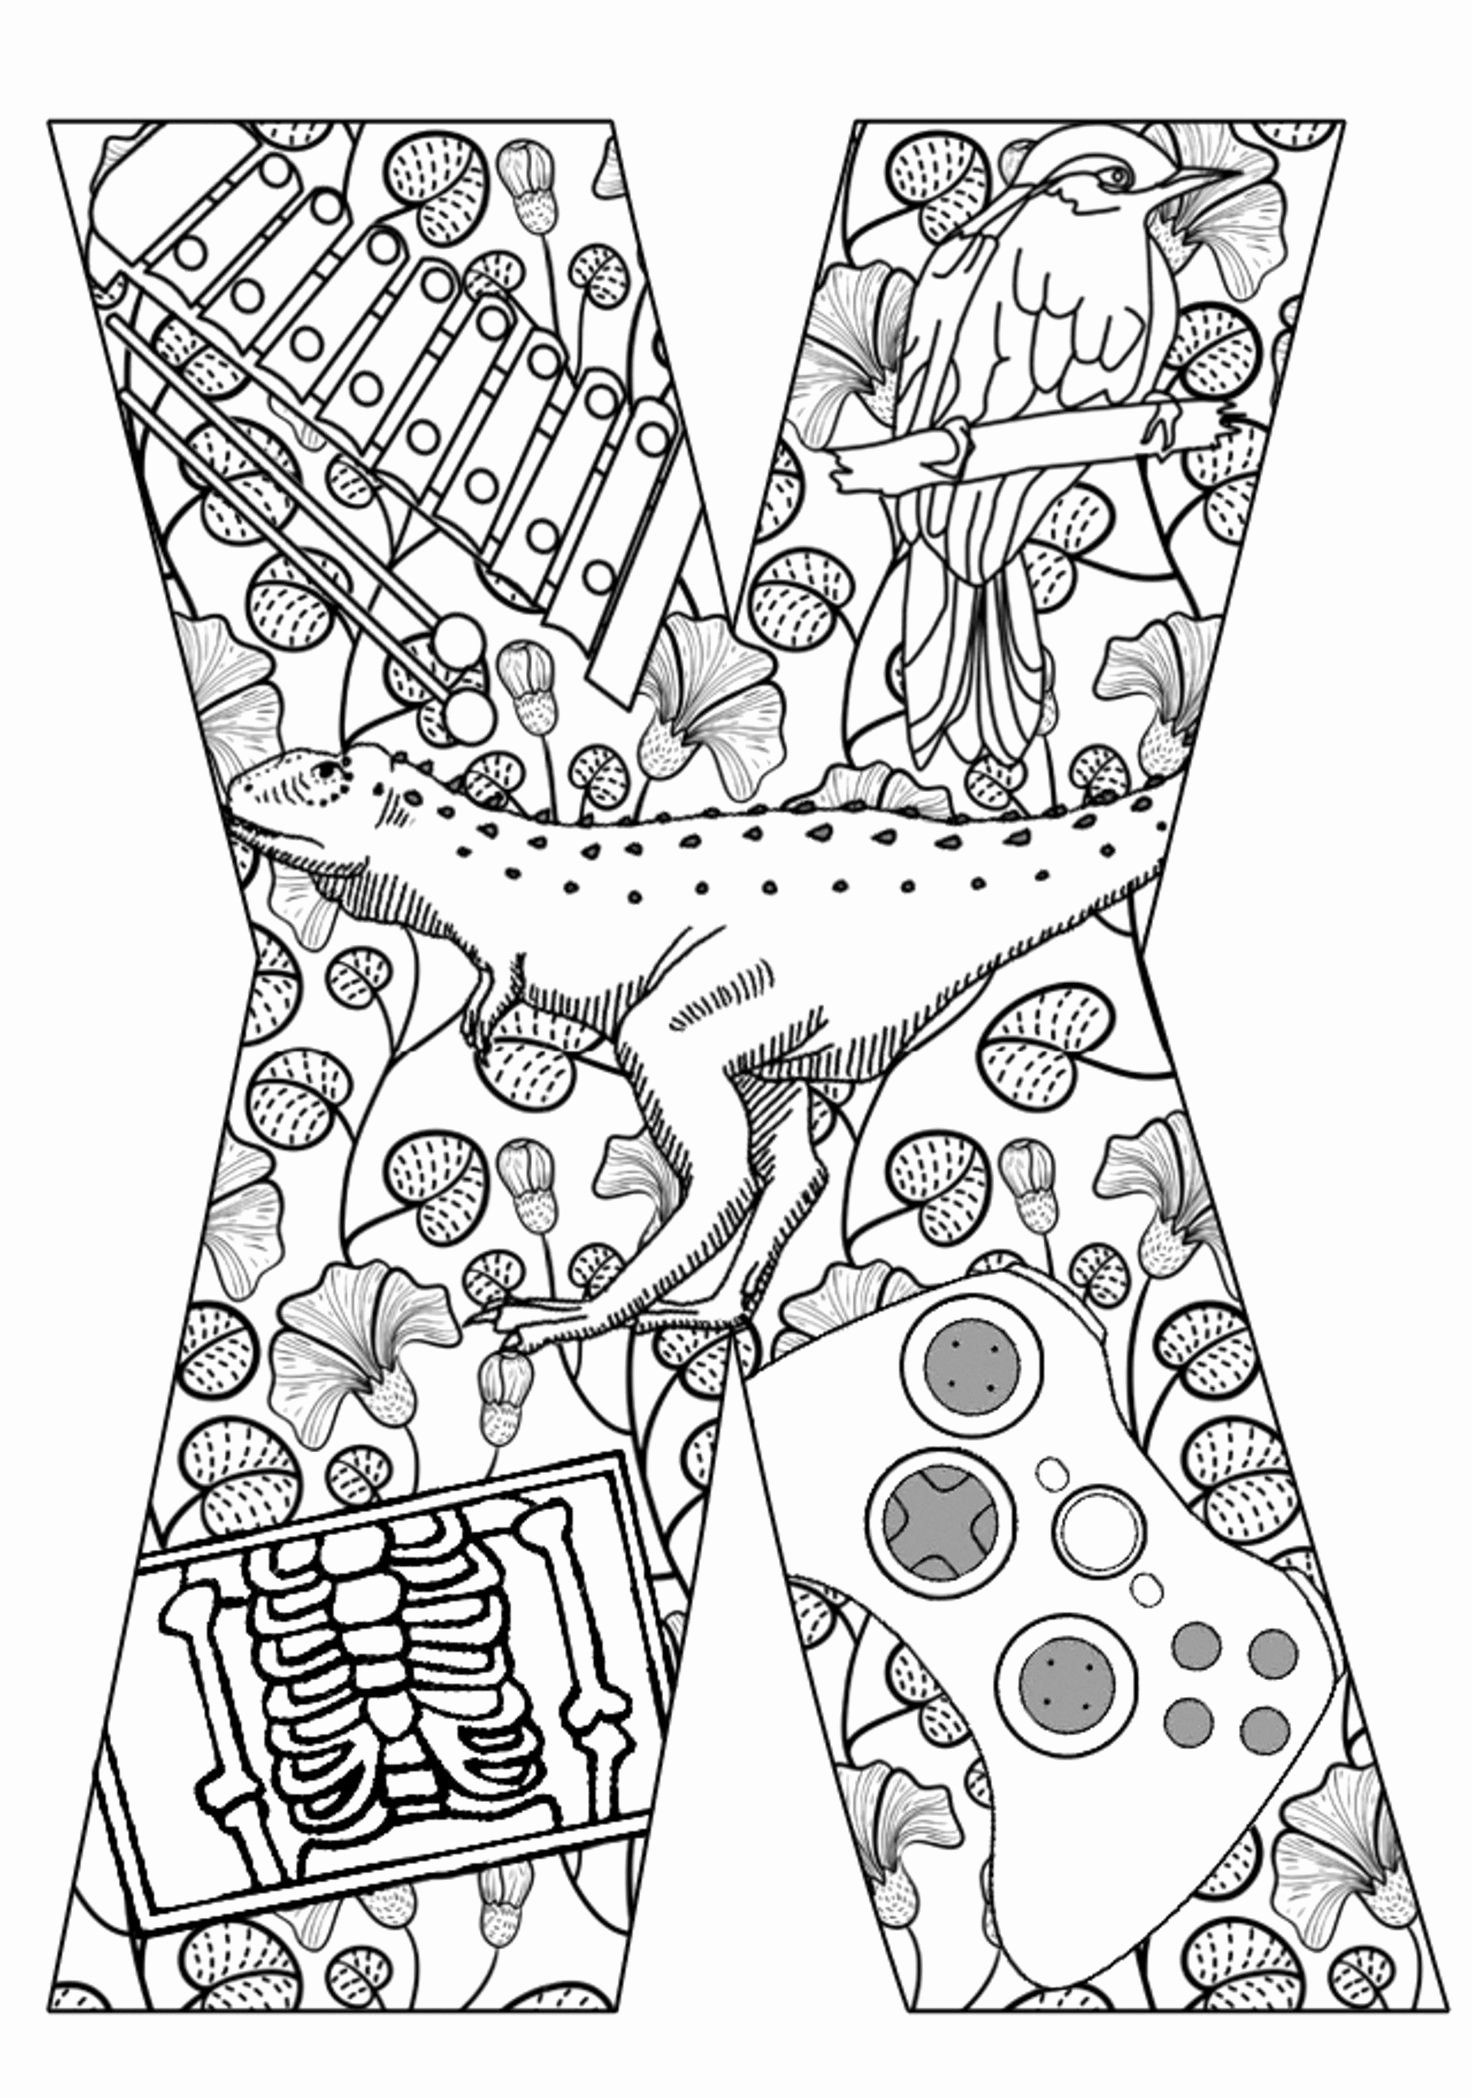 Coloring Games For Adults Online In 2020 Alphabet Coloring Pages Letter A Coloring Pages